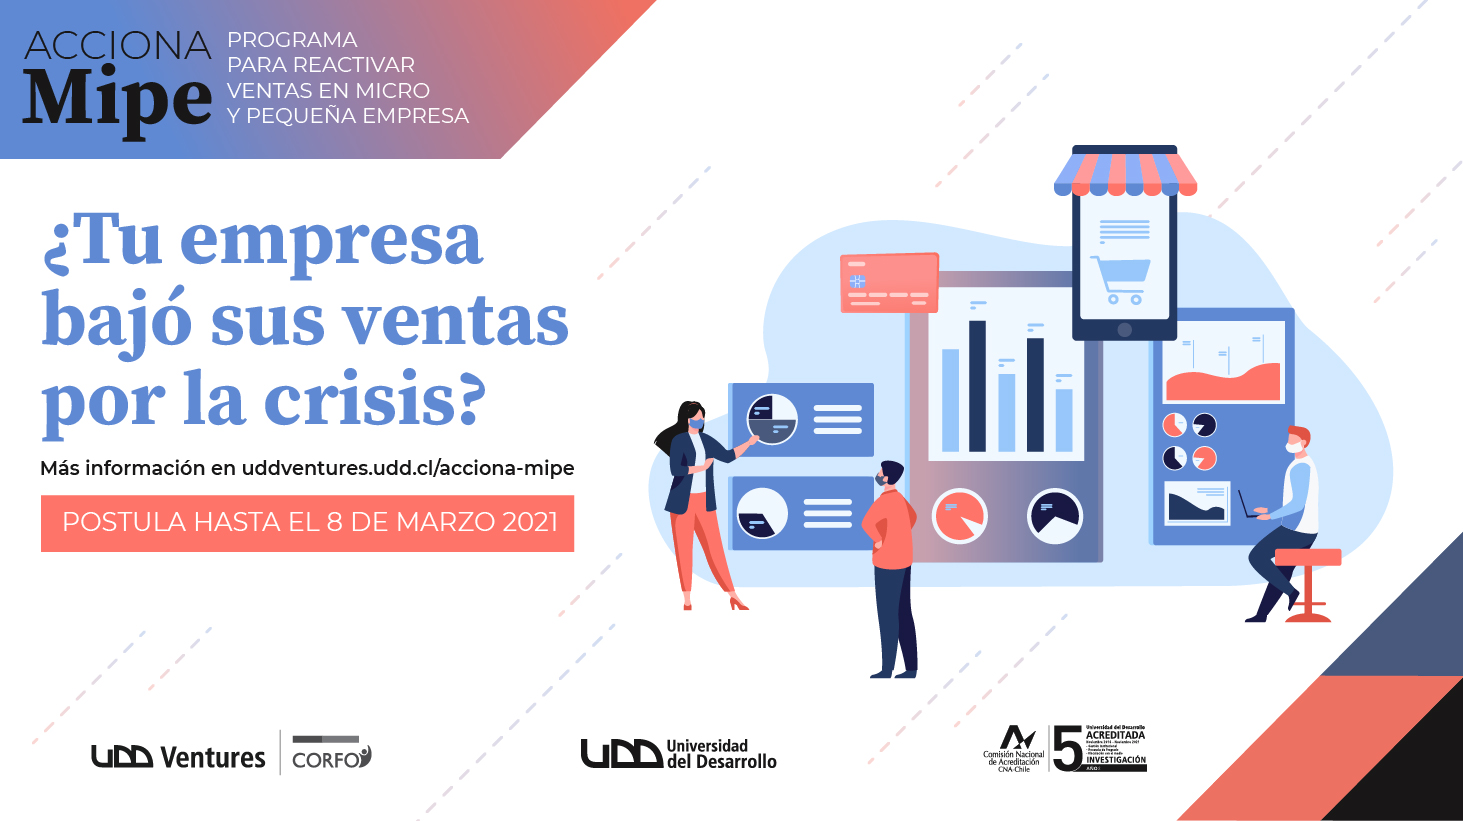 UDD Ventures lanza convocatoria